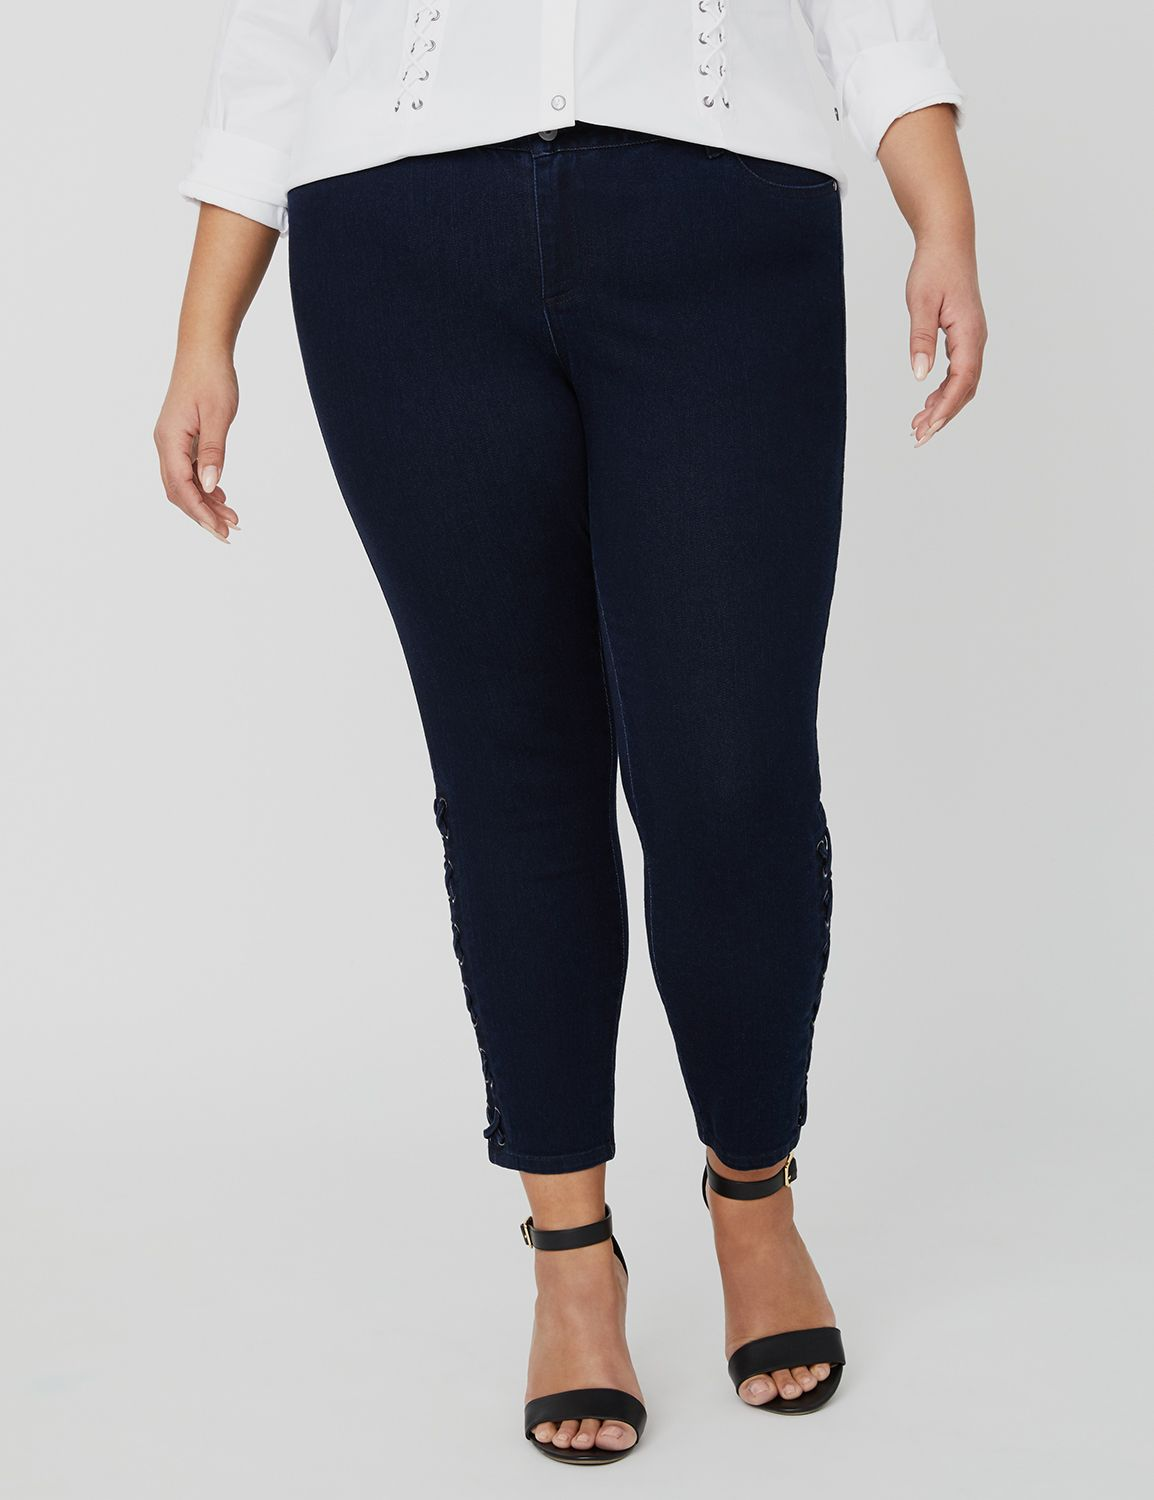 Curvy Collection Lace-Up Jean 1088607 Curvy Collection Sateen (11 MP-300099592